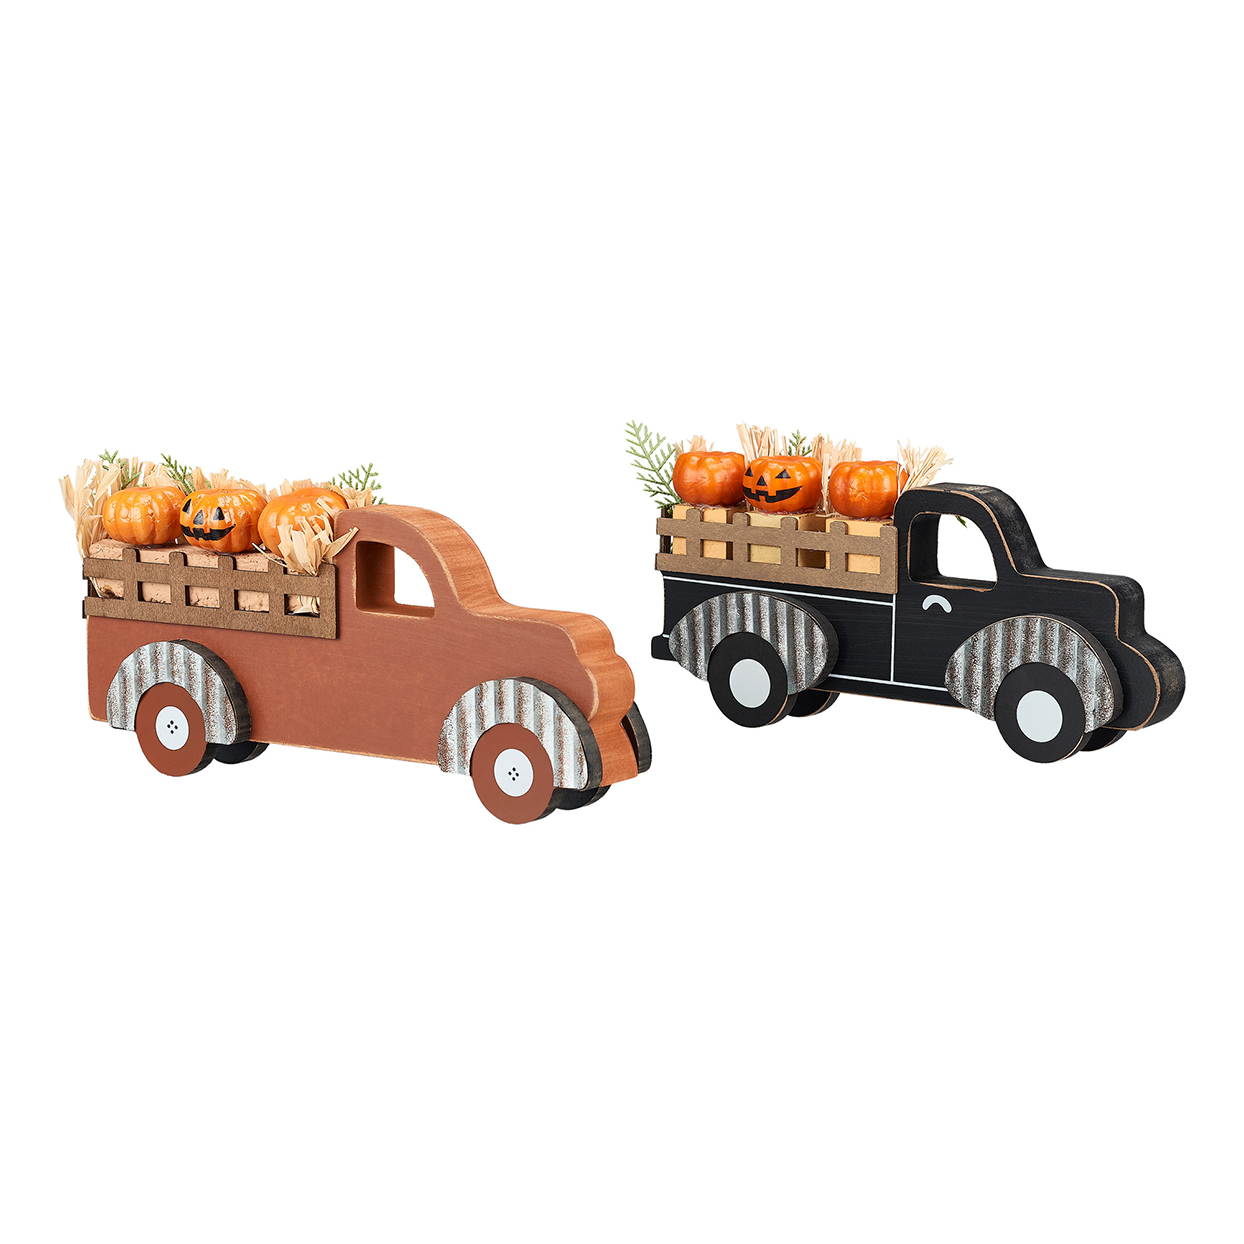 Way to Celebrate Wood Pumpkin Antique Truck Table Top Halloween Decoration